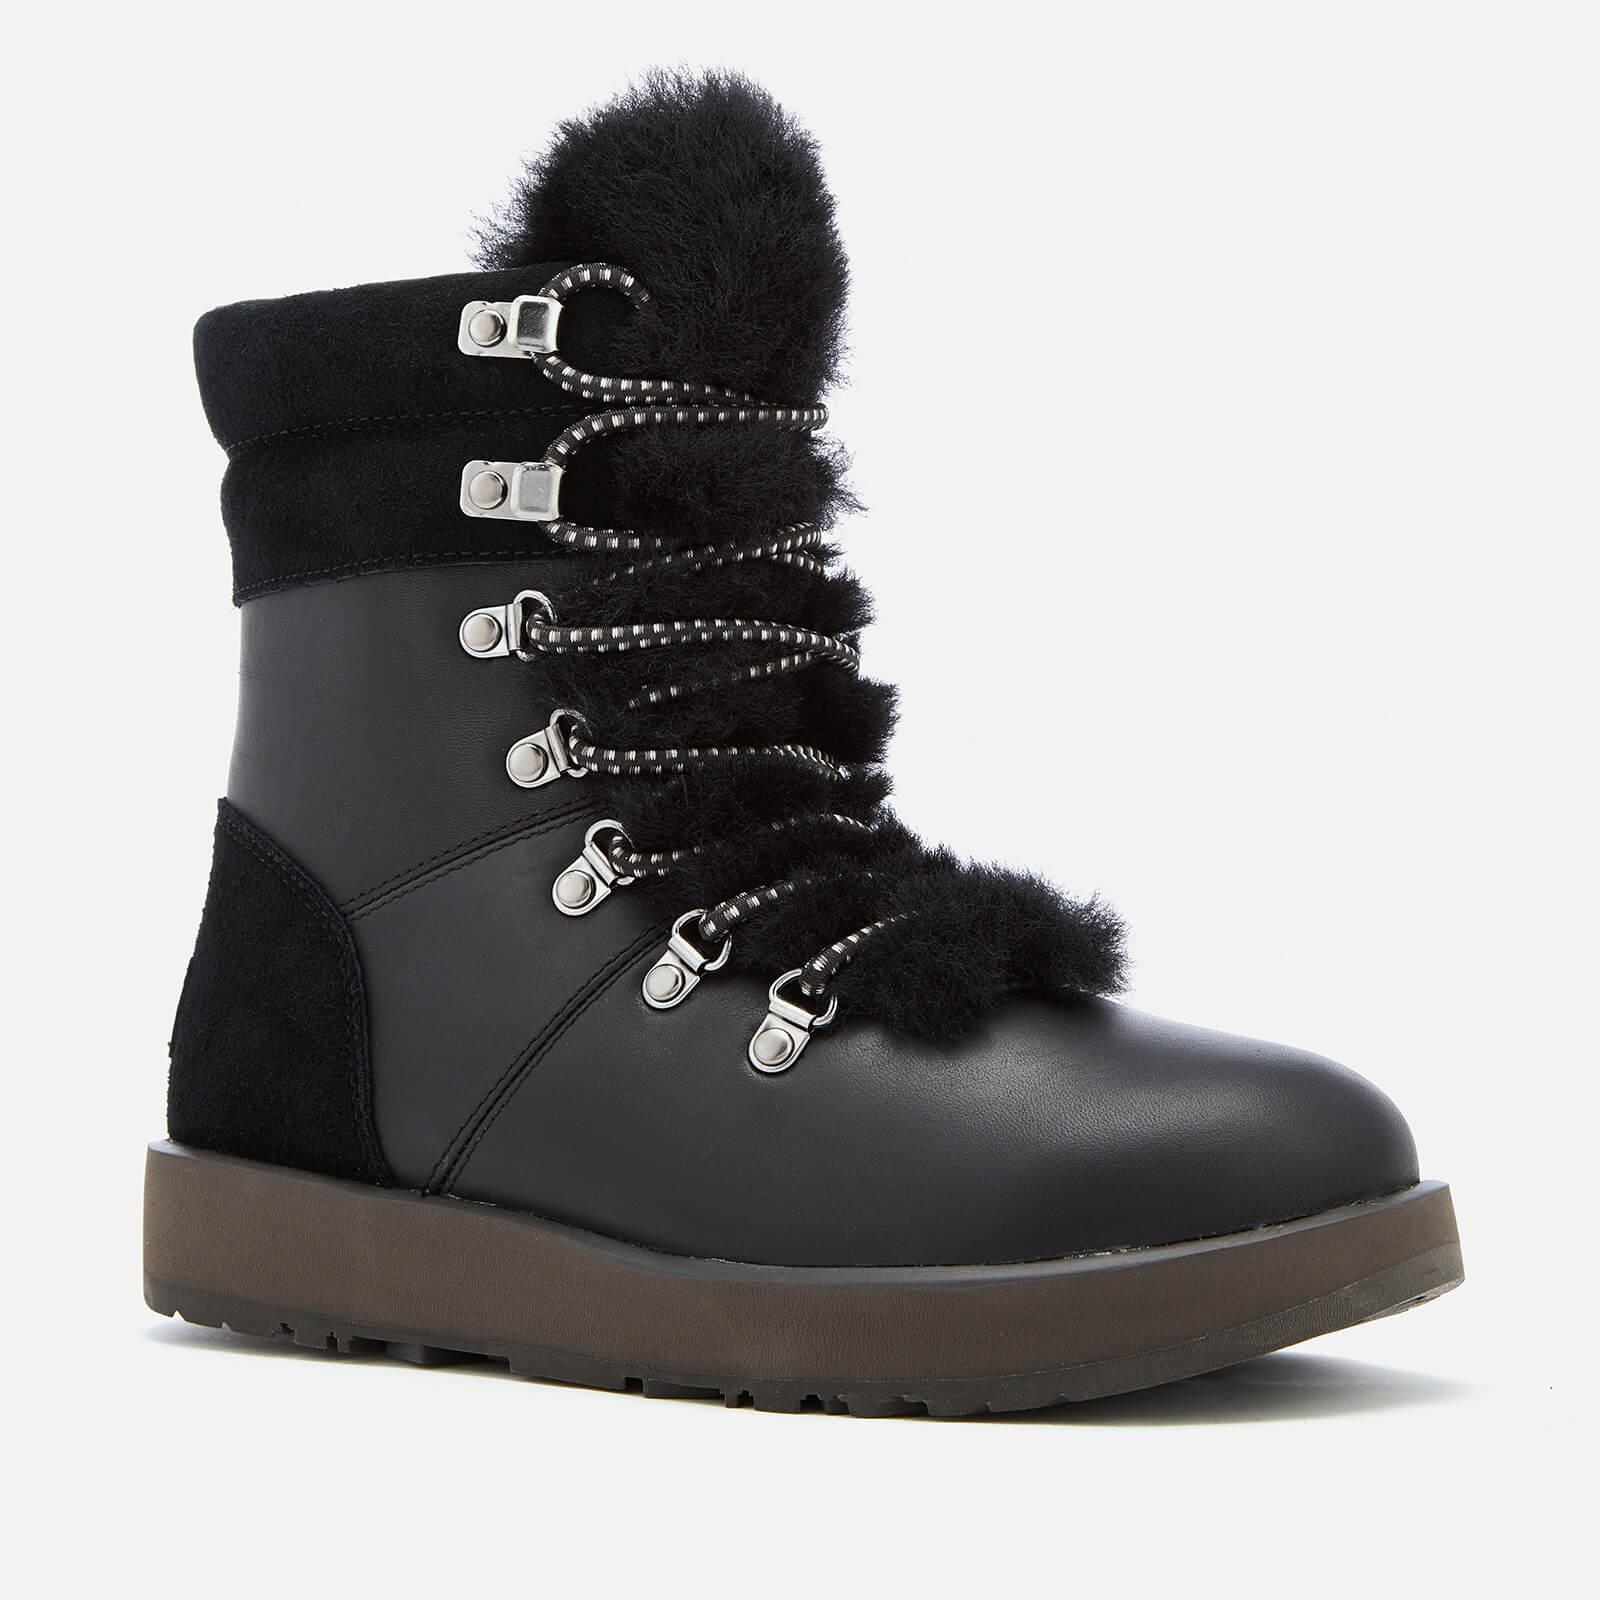 cfdea8c9810 Ugg Black Viki Waterproof Leather Lace Up Boots